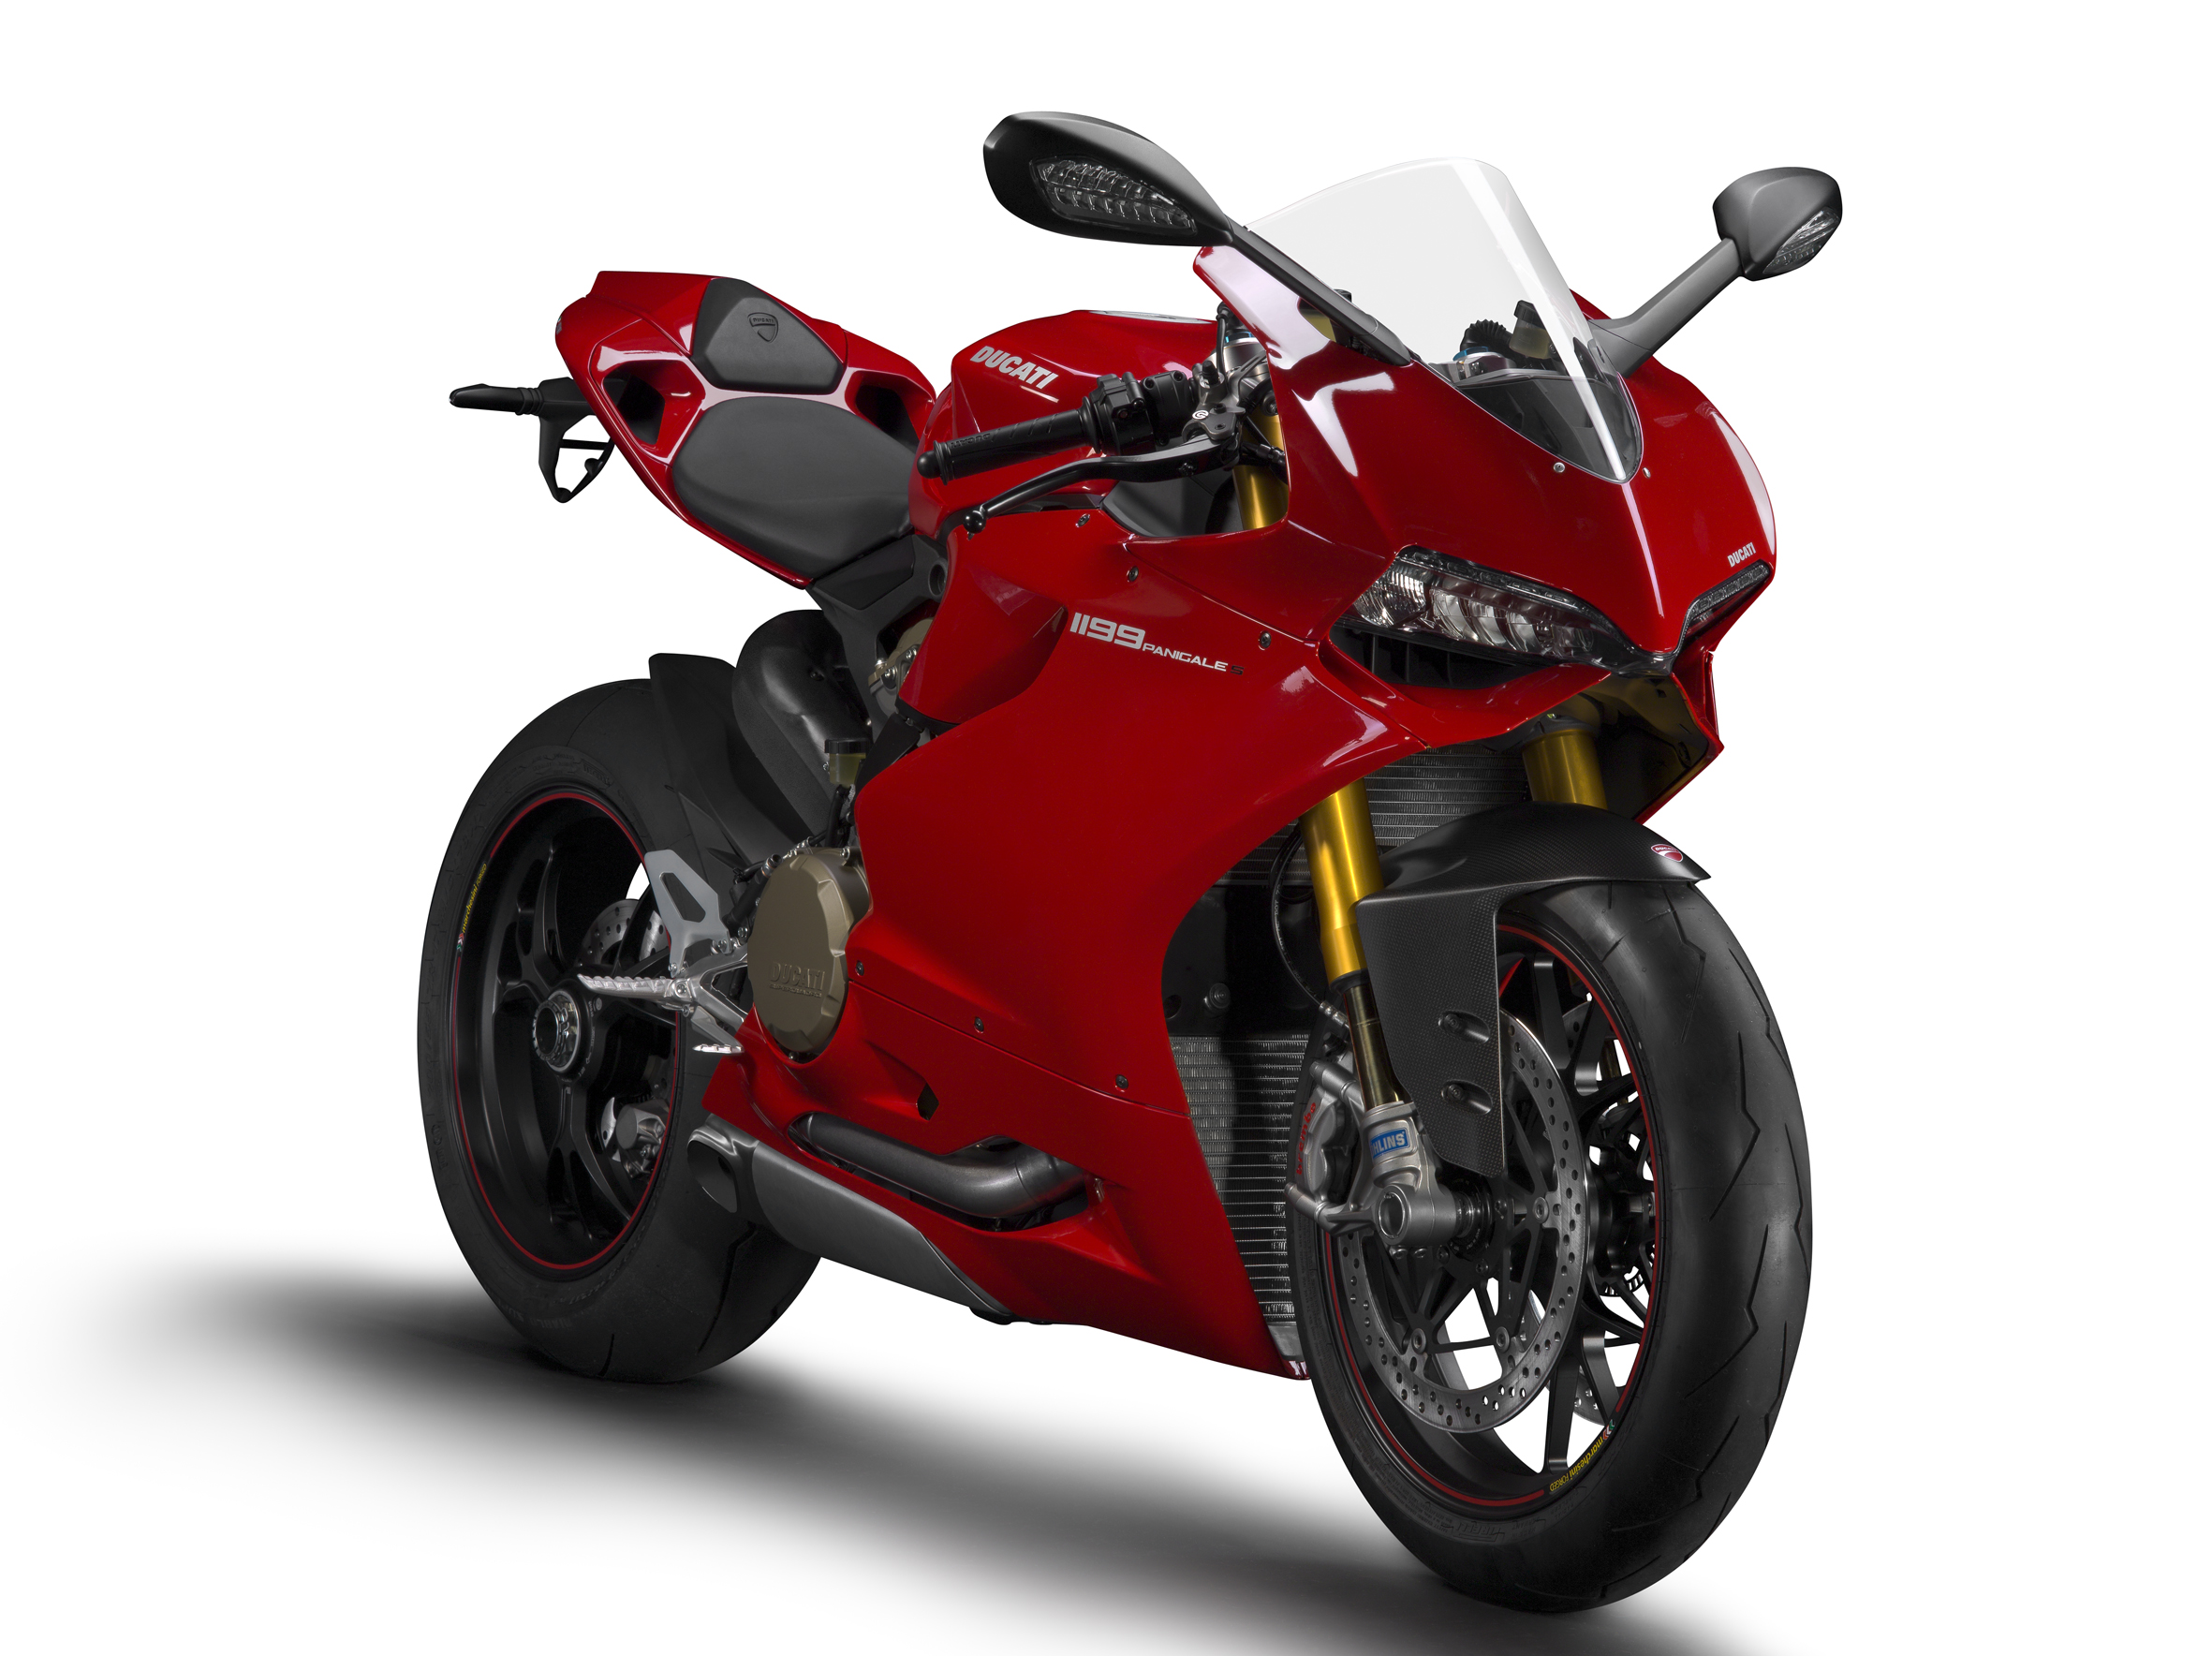 Ducati Panigale Hadiyantacom Blogger Commuter Father Engineer All New Cbr 150r Victory Black Red Bantul The Impressive